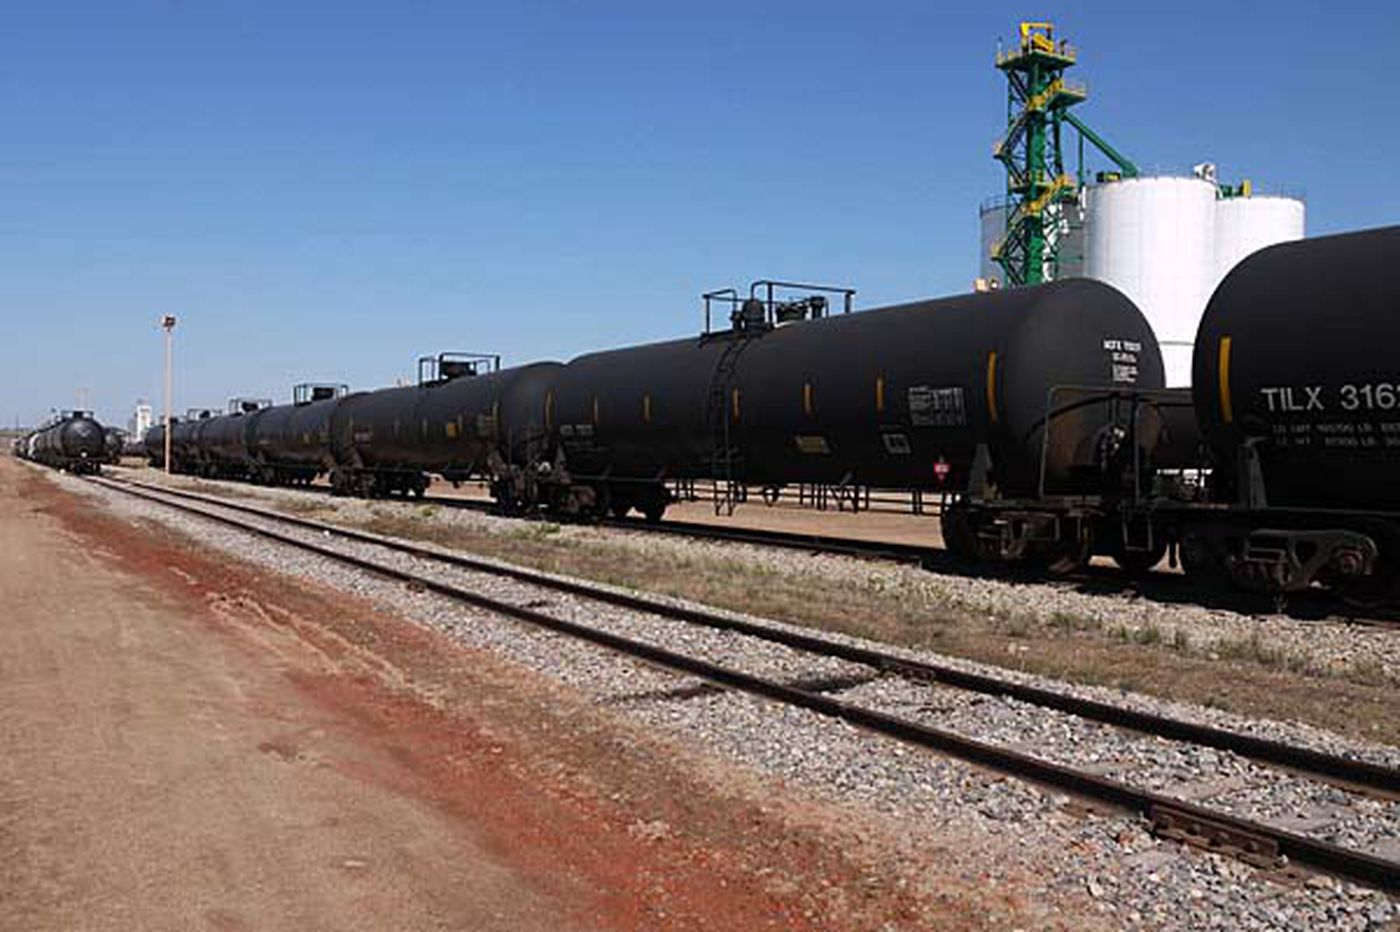 Mystery of the unexploded oil train